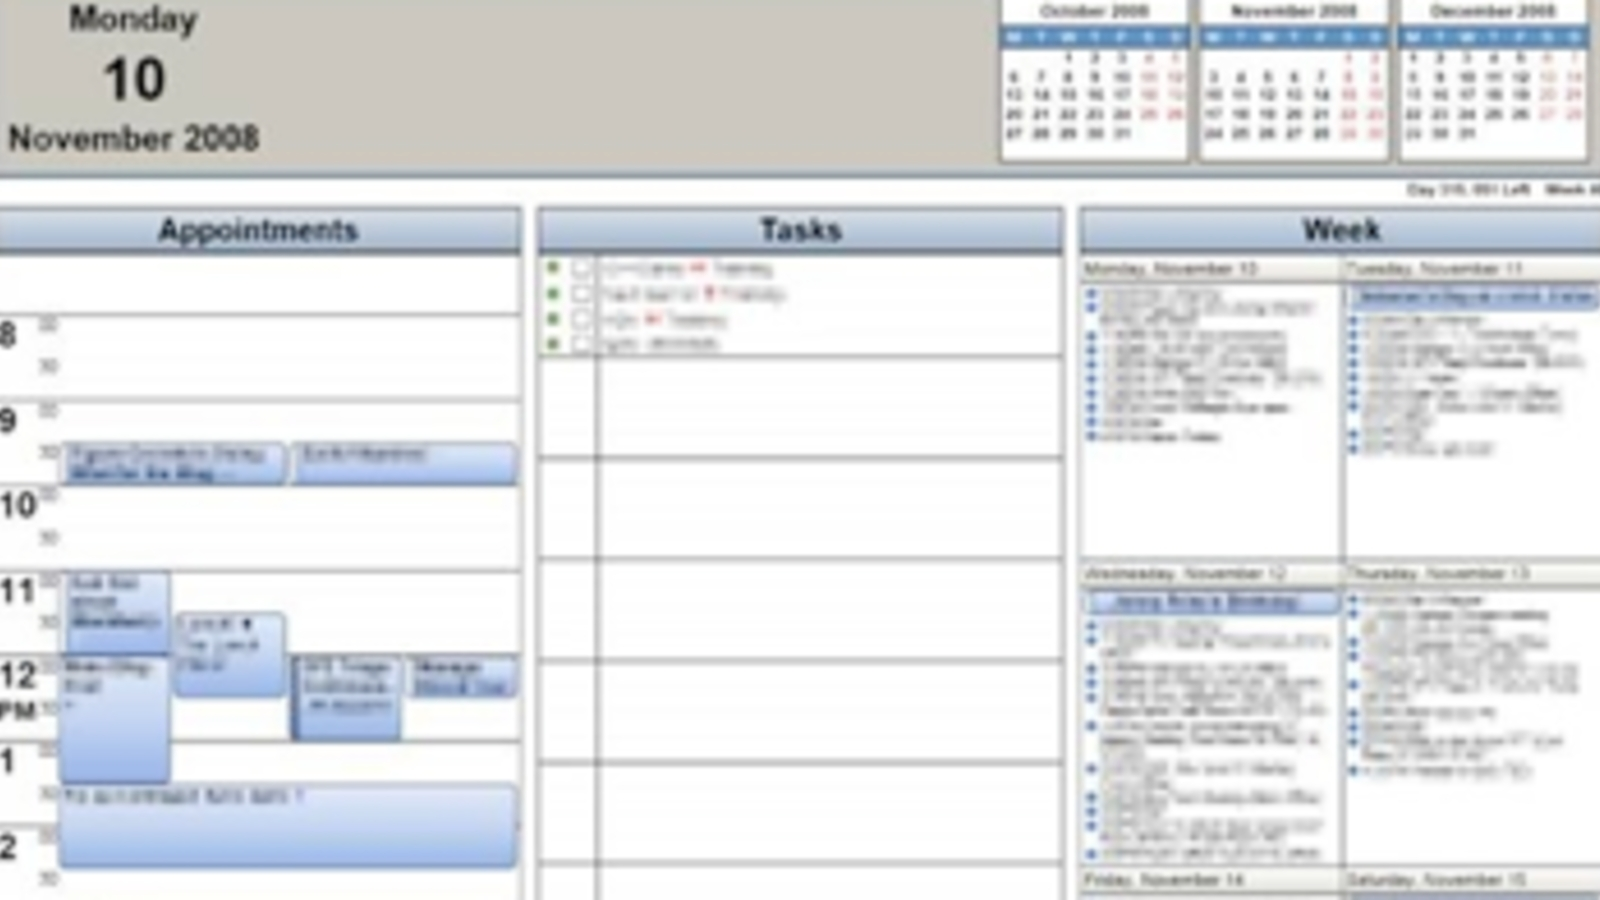 Download Templates For Calendar Printing Assistant For - Mandegar_Calendar Printing Assistant Download